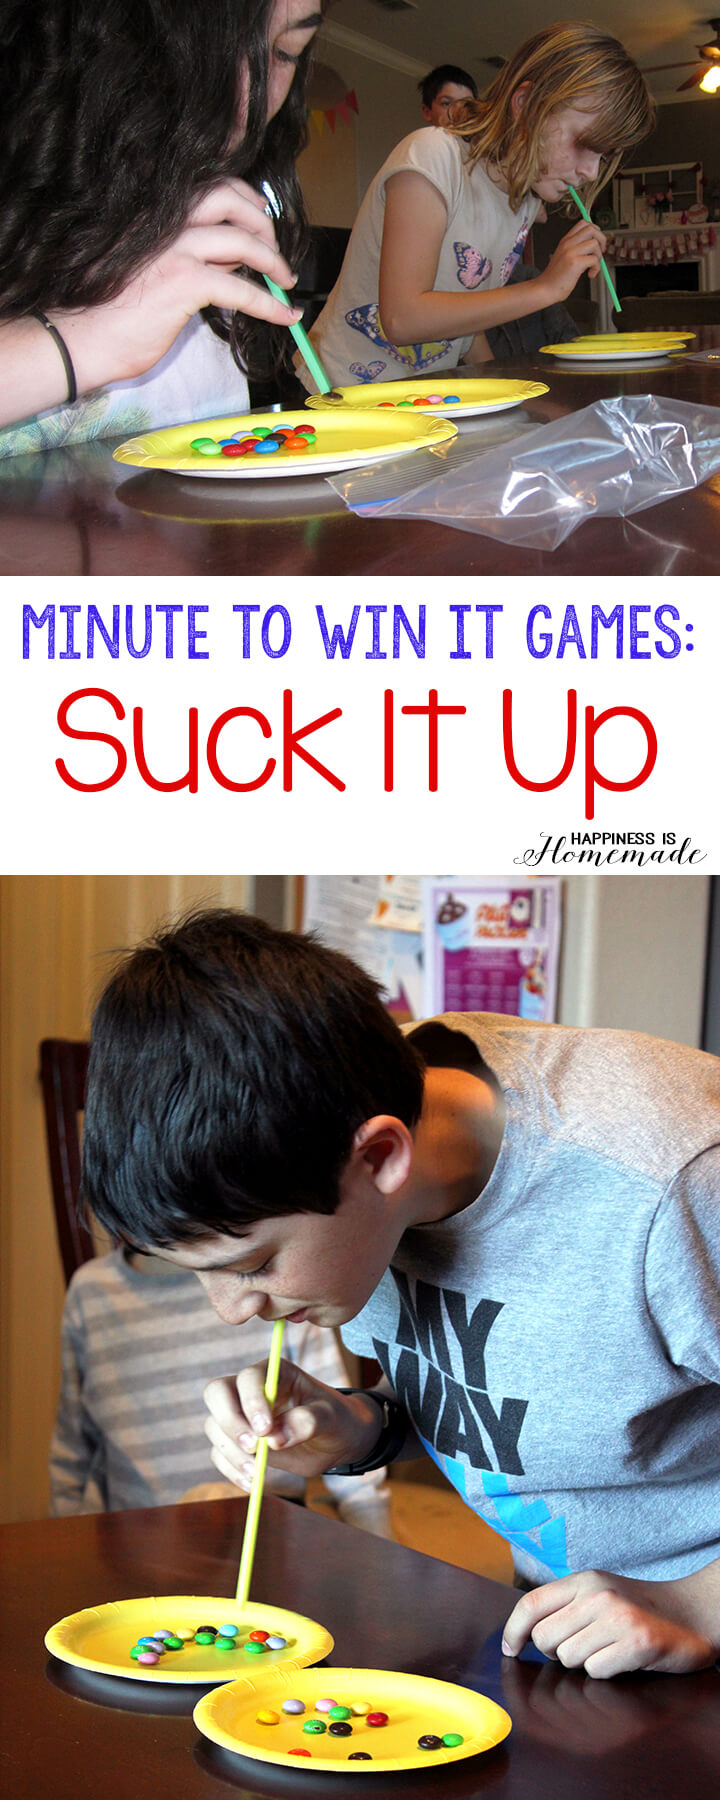 Minute to Win It Games - Suck It Up